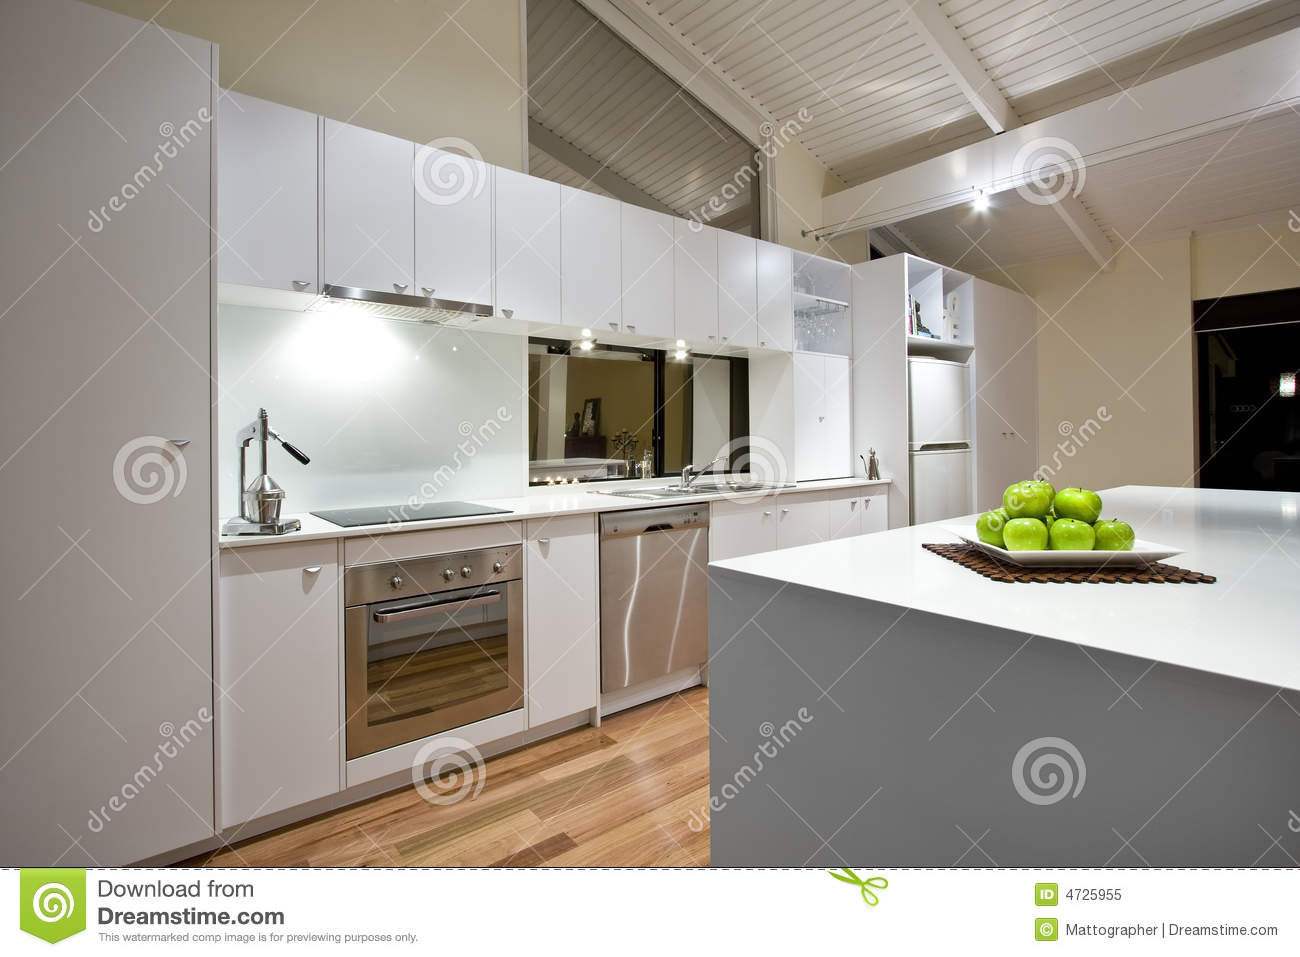 Clean modern kitchen royalty free stock photo image 4725955 for Cuisine moderne